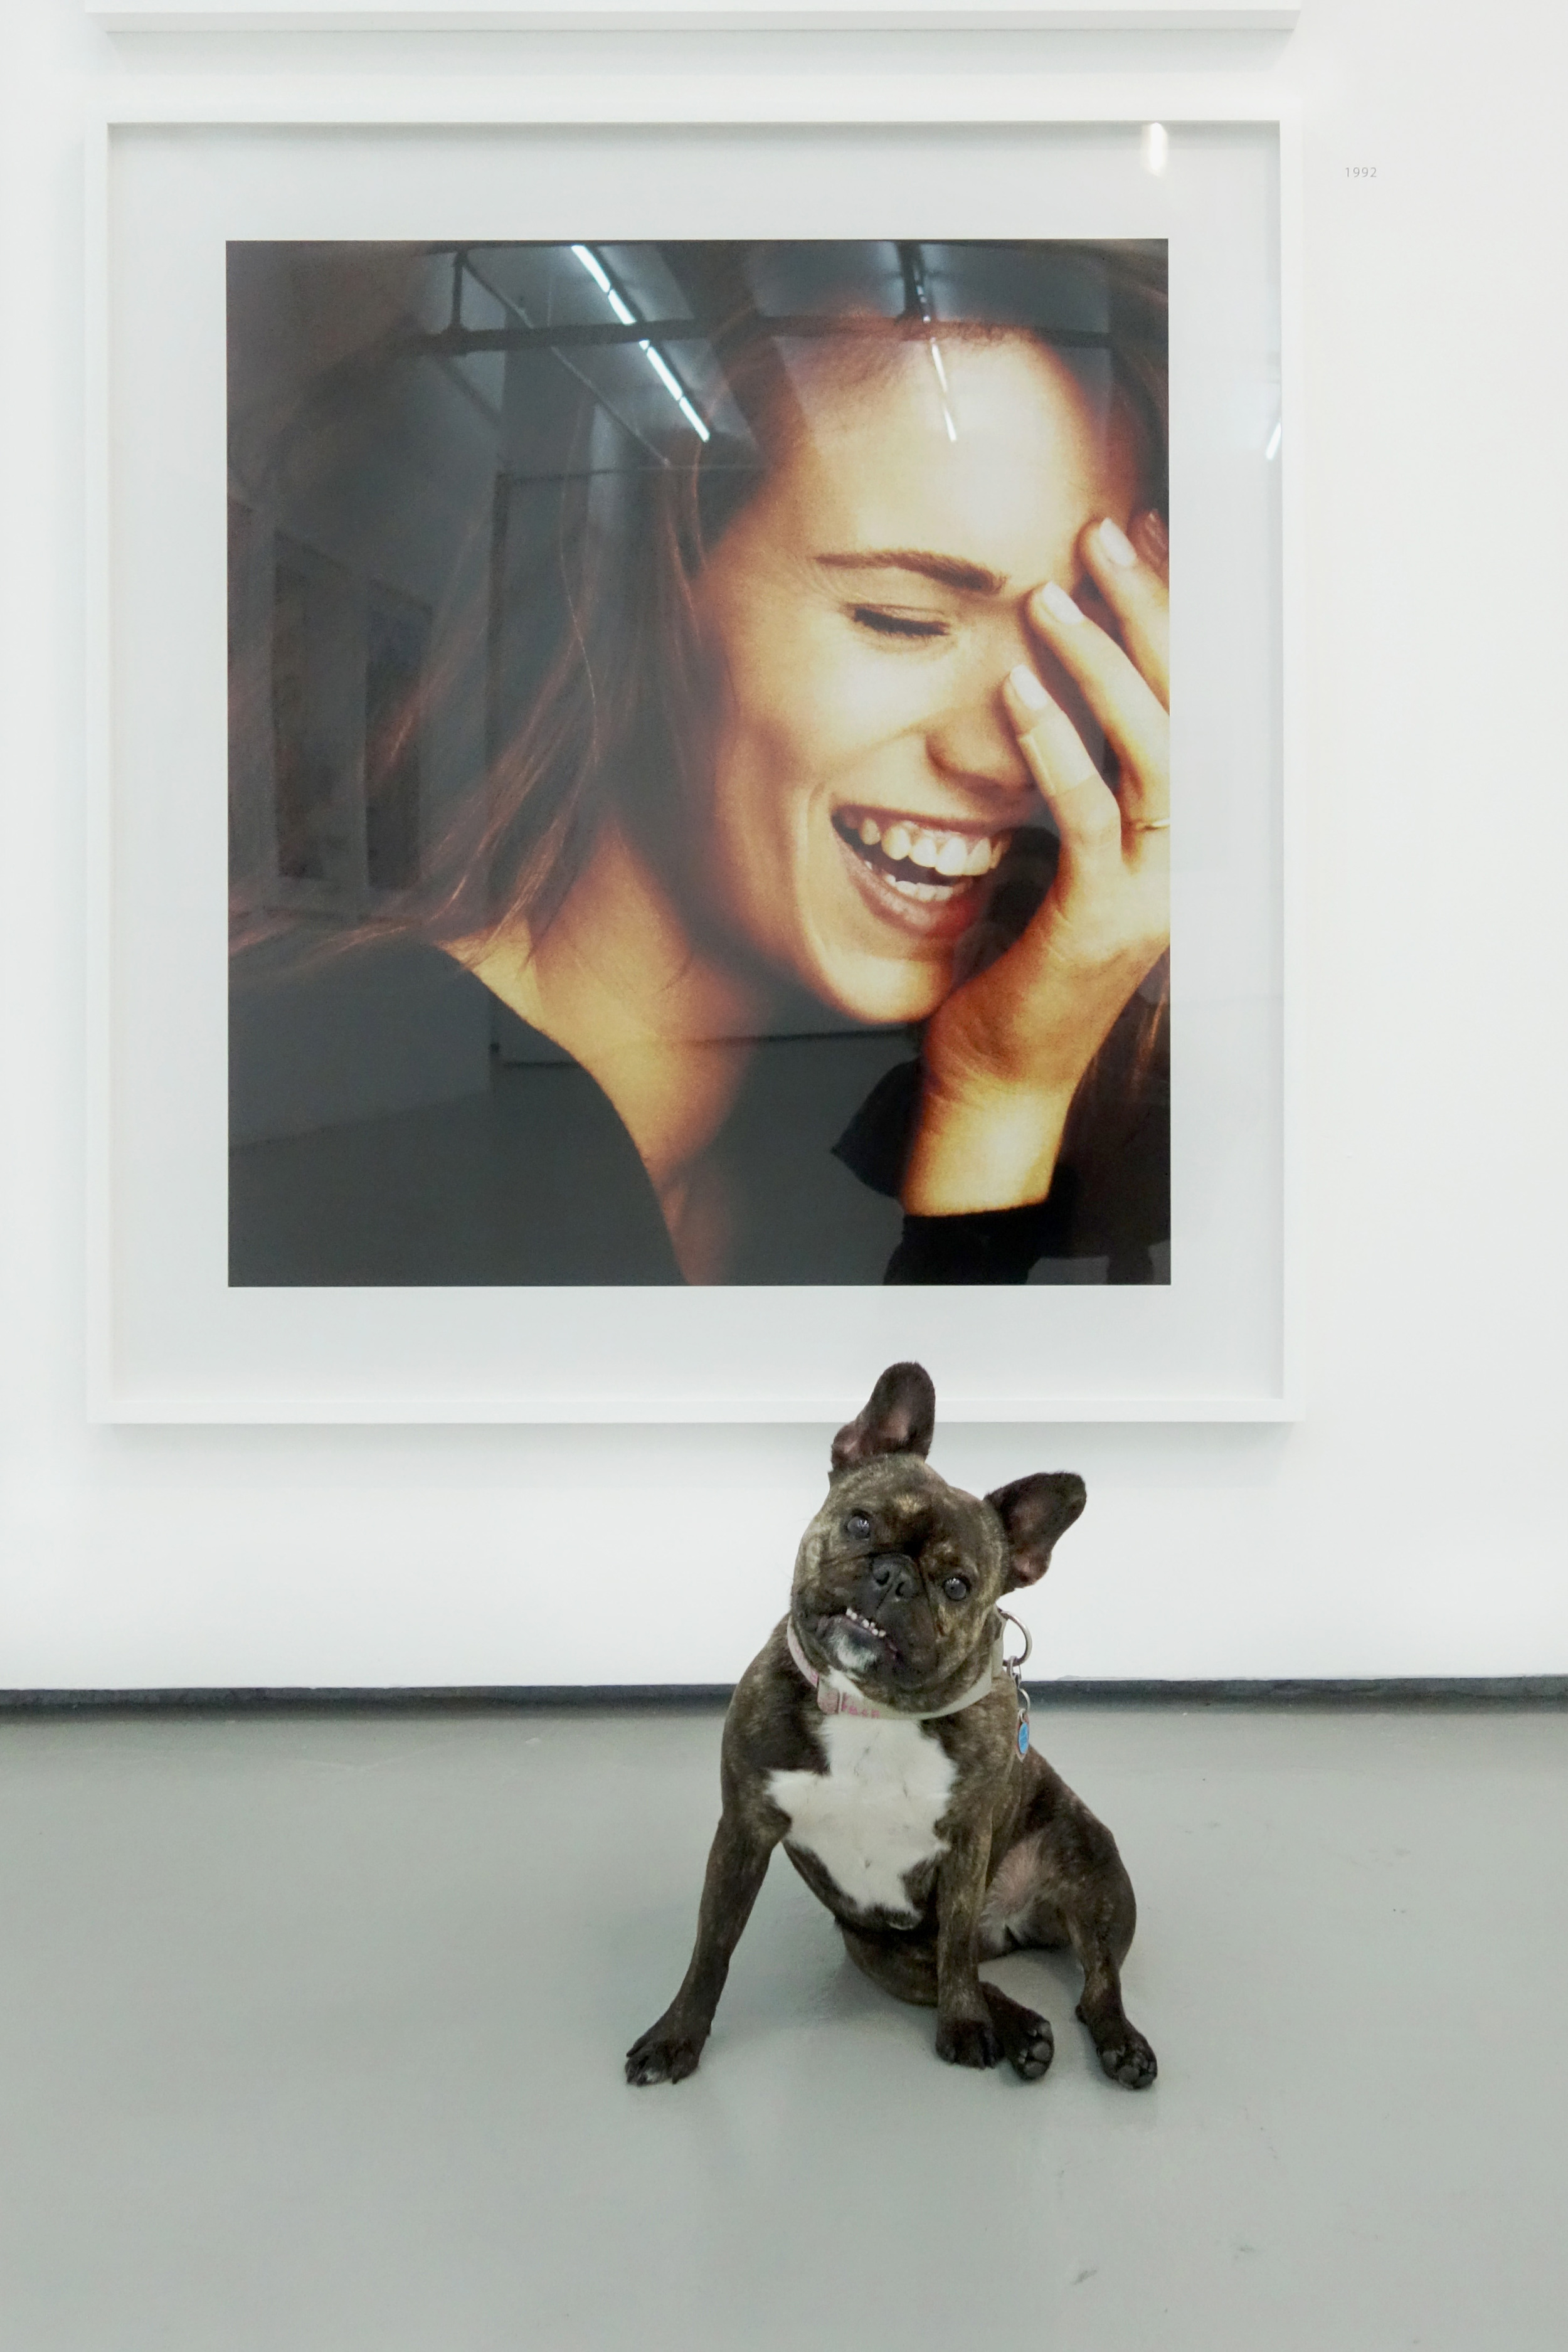 """Mom said to smile… I don't think it works for me.   Hank Willis Thomas """"Laugh it off,"""" 1992/2015, 2015 in Unbranded: A Century of White Women, 1915-2015 at Jack Shainman Gallery."""